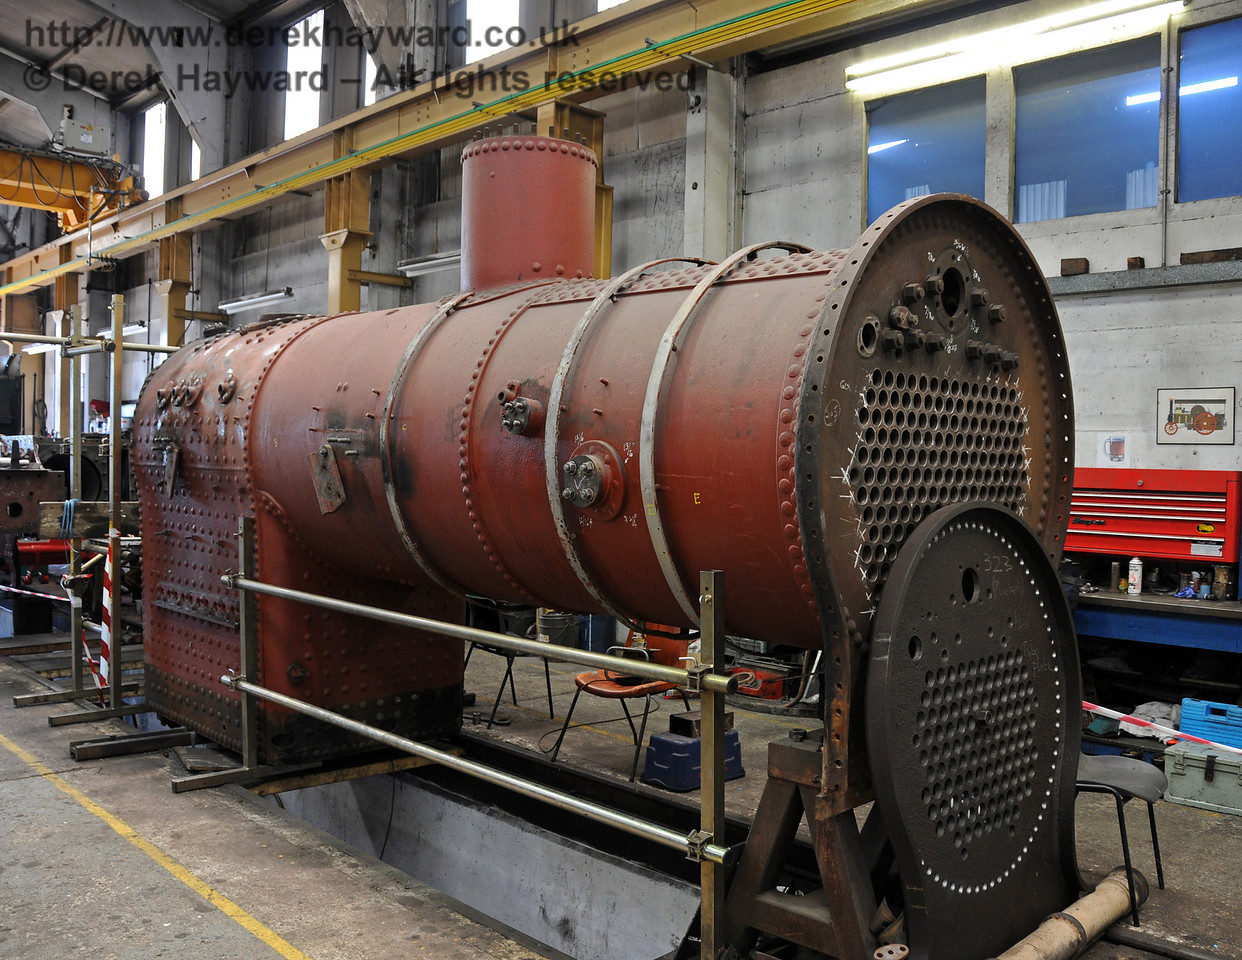 The boiler from 263.  The small tubeplate leaning against the front is from 323 Bluebell. Sheffield Park Workshops 23.05.2010  2639